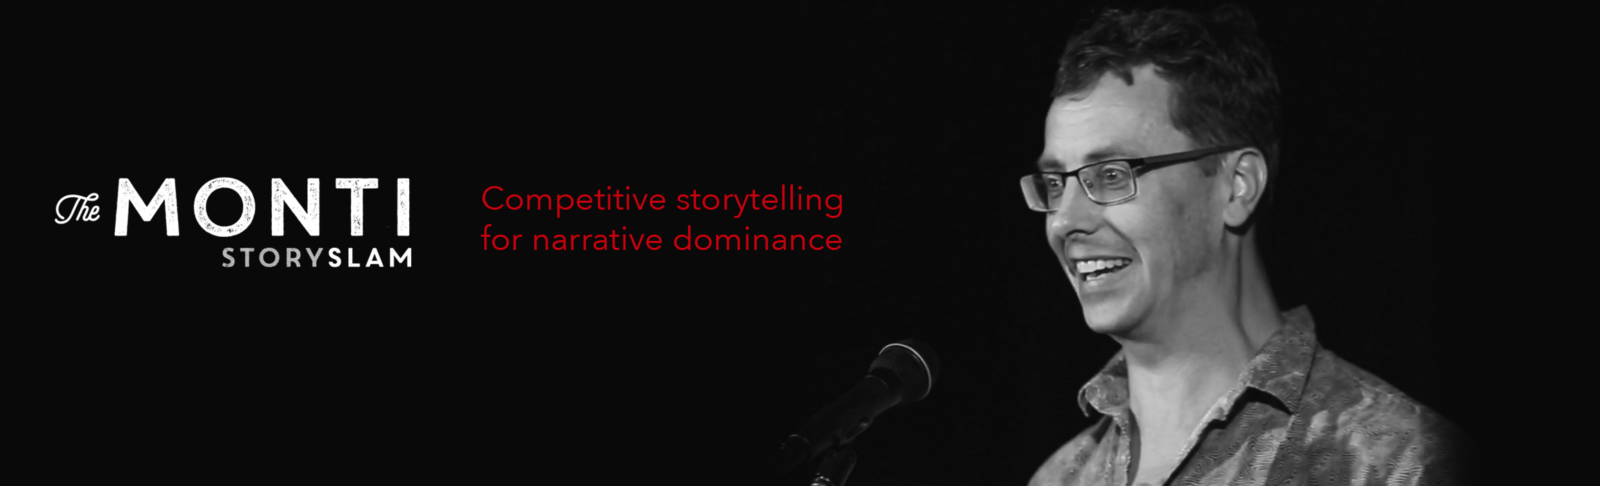 Competitive storytelling for narrative dominance